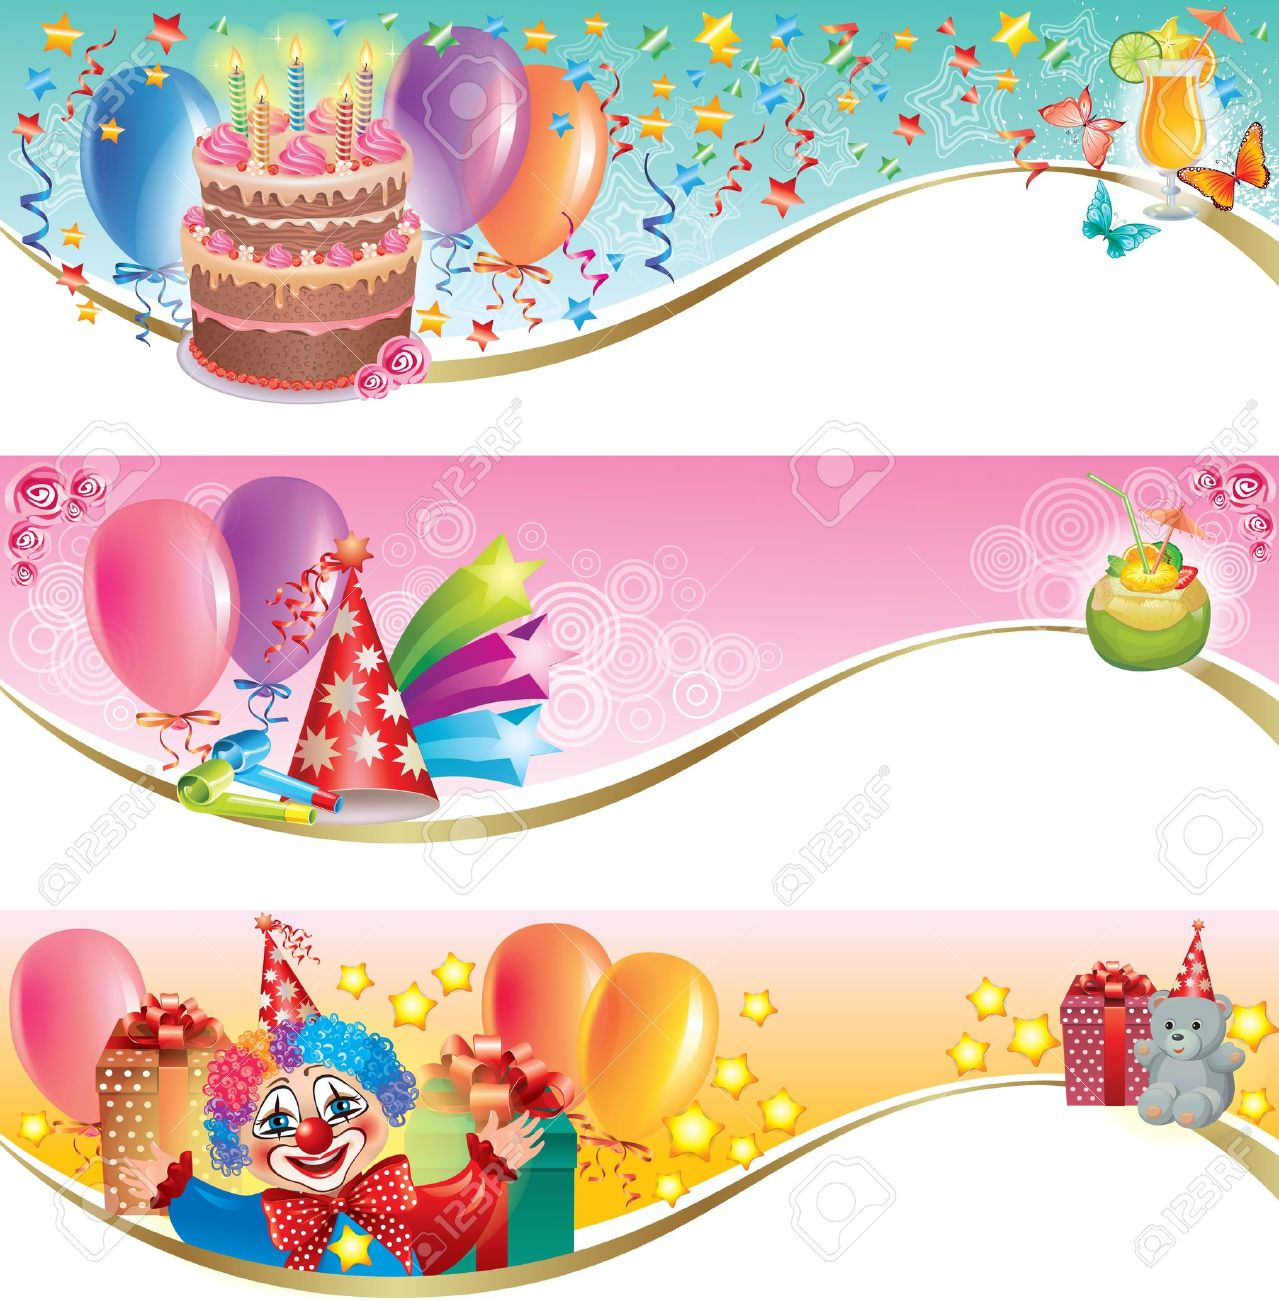 Decorative birthday banners.Contains transparent objects. Stock Vector - 15829472